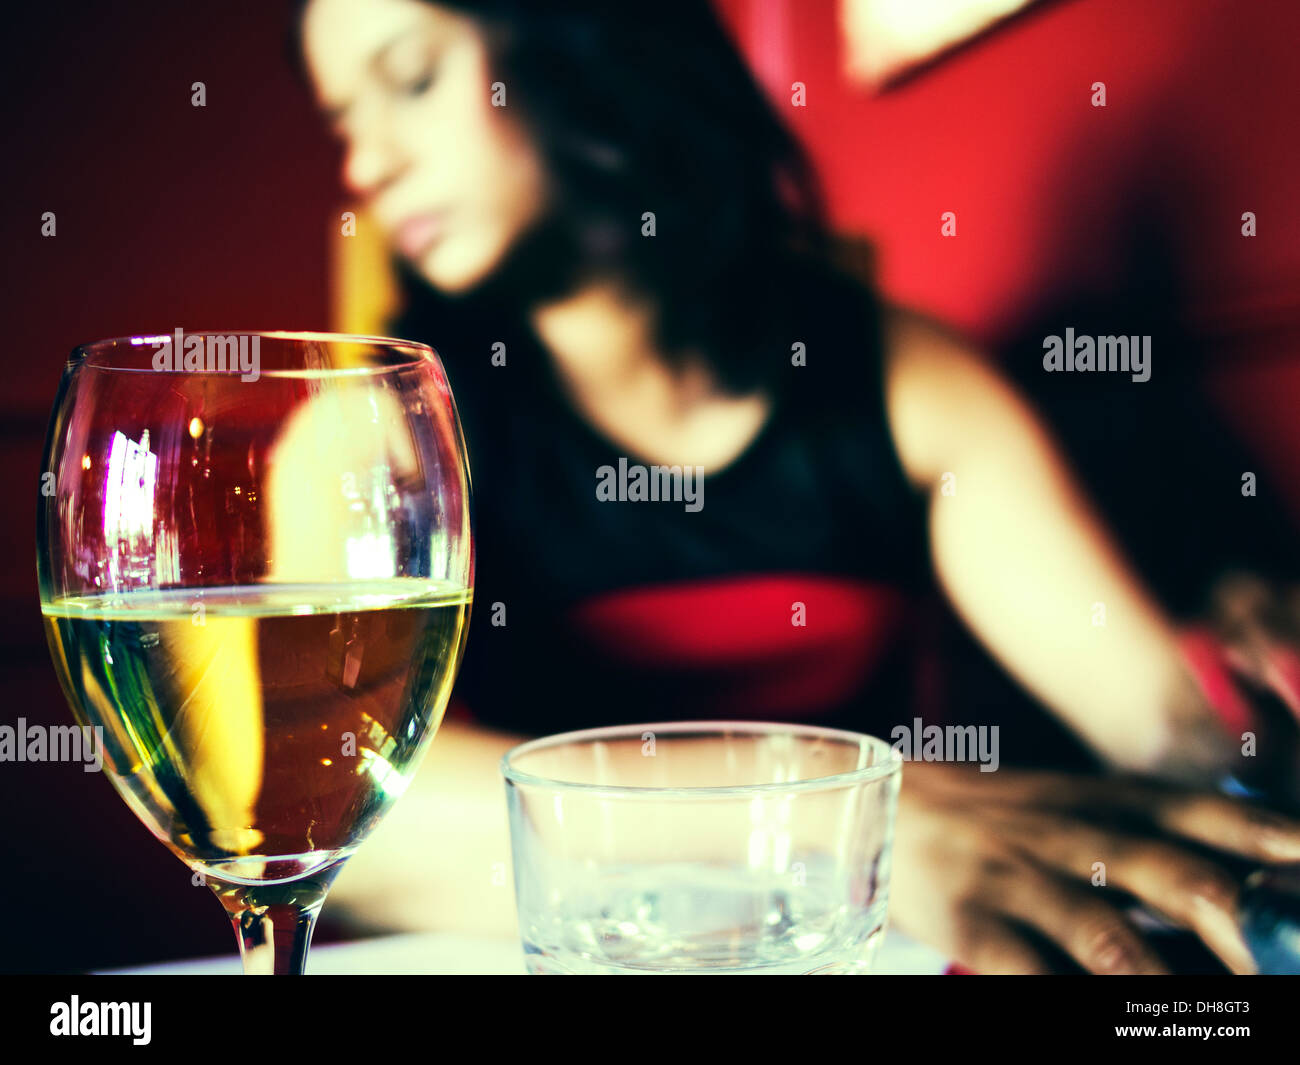 Glass of wine and woman in restaurant - Stock Image